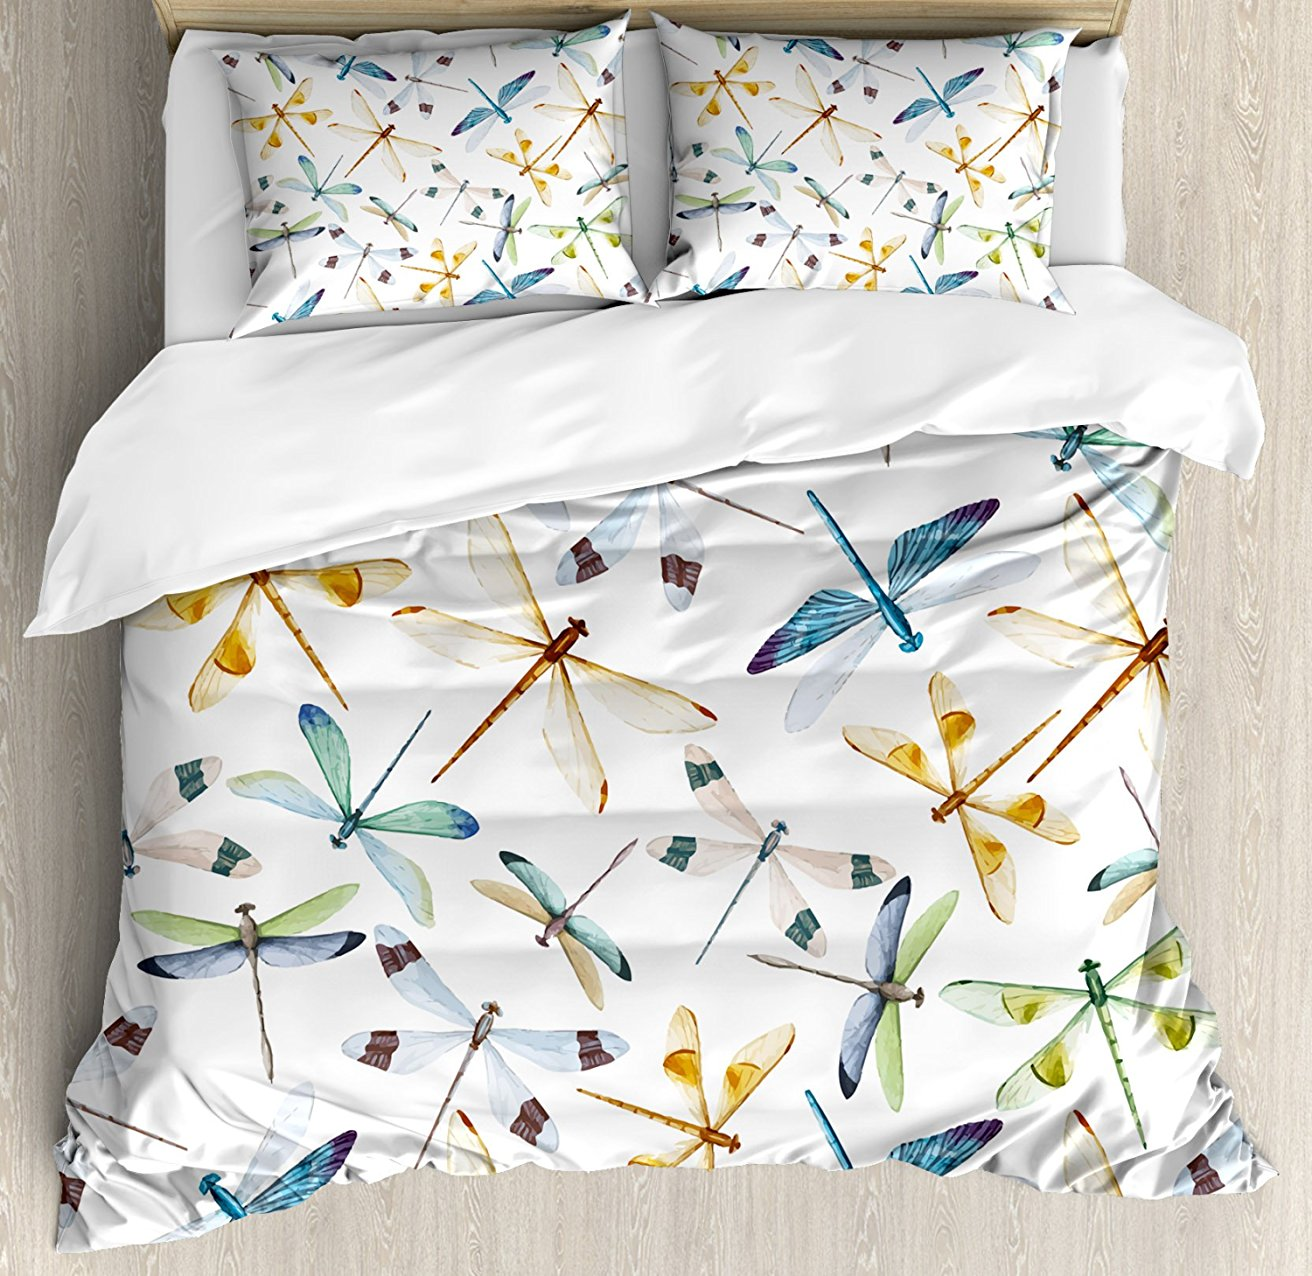 Dragonfly Duvet Cover Set Moth Butterfly Like Bugs In Watercolor Print Modern Minimalist Design Art Print 4 Piece Bedding Set Bedding Sets Aliexpress